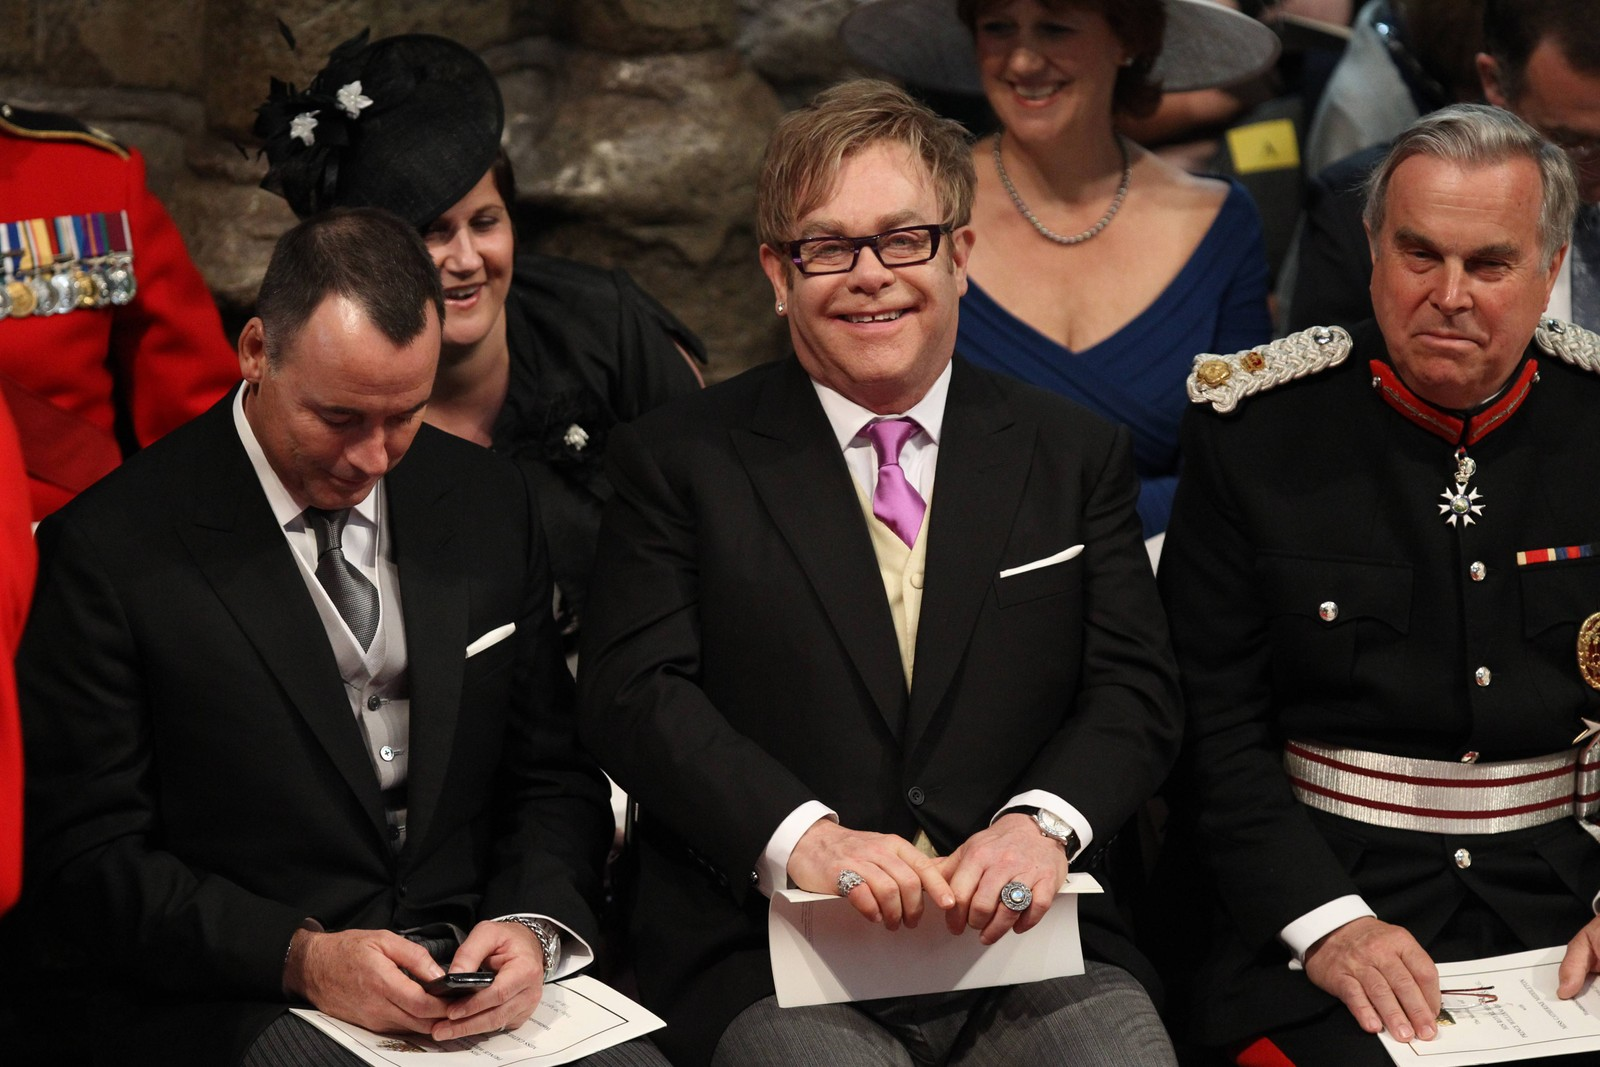 2011: Ektefelle David Furnish og Elton John på plass i Westminister Abbey i bryllupet til prins William og Kate Middleton 29. april.